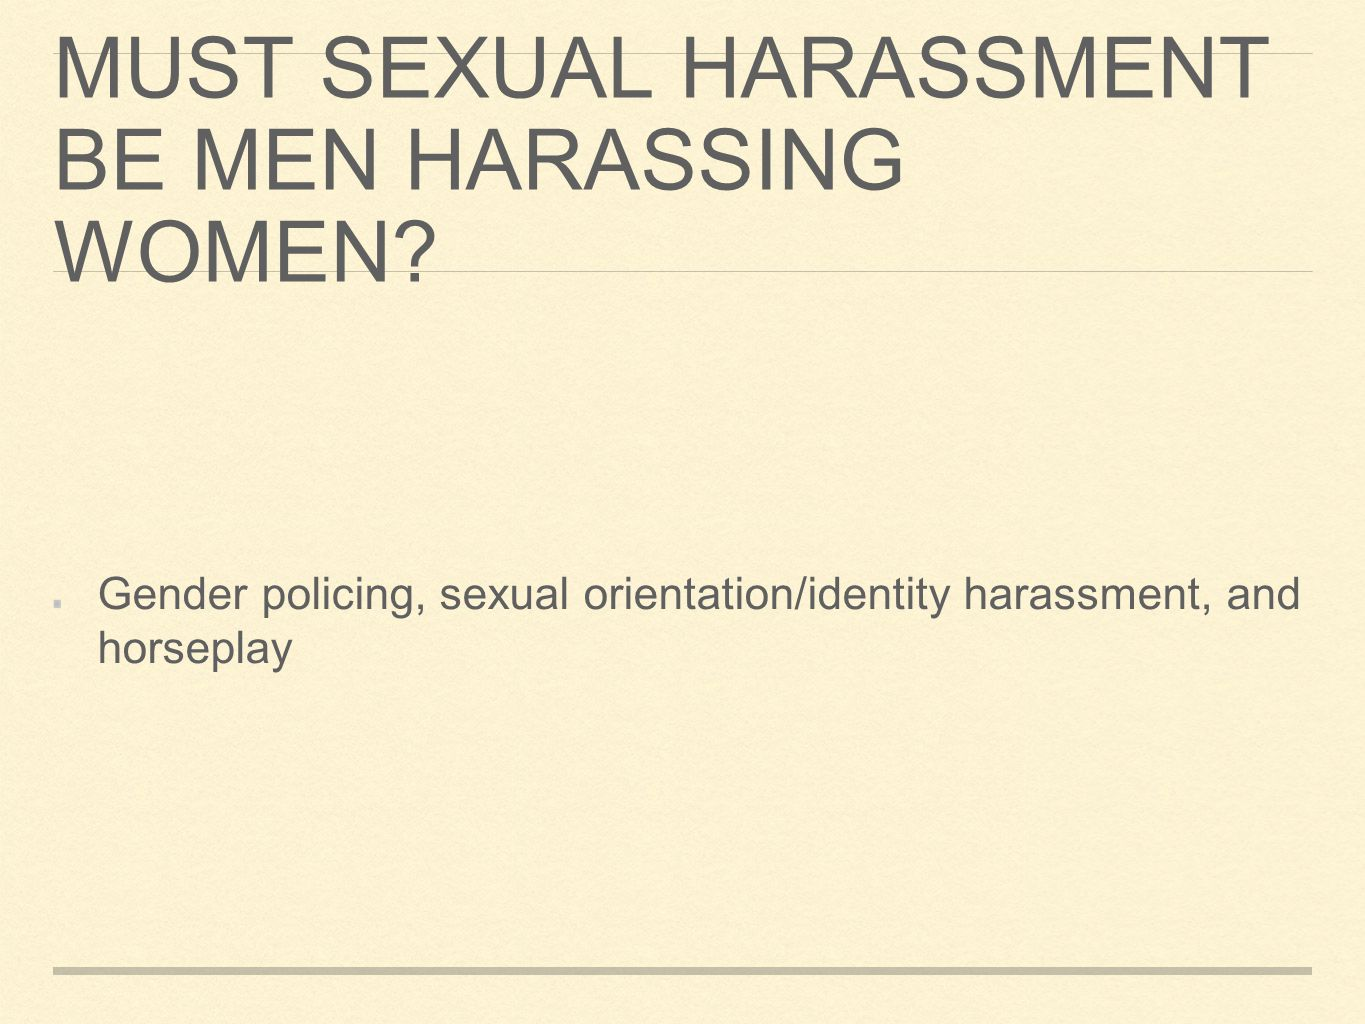 MUST SEXUAL HARASSMENT BE MEN HARASSING WOMEN? Gender policing, sexual orientation/identity harassment, and horseplay